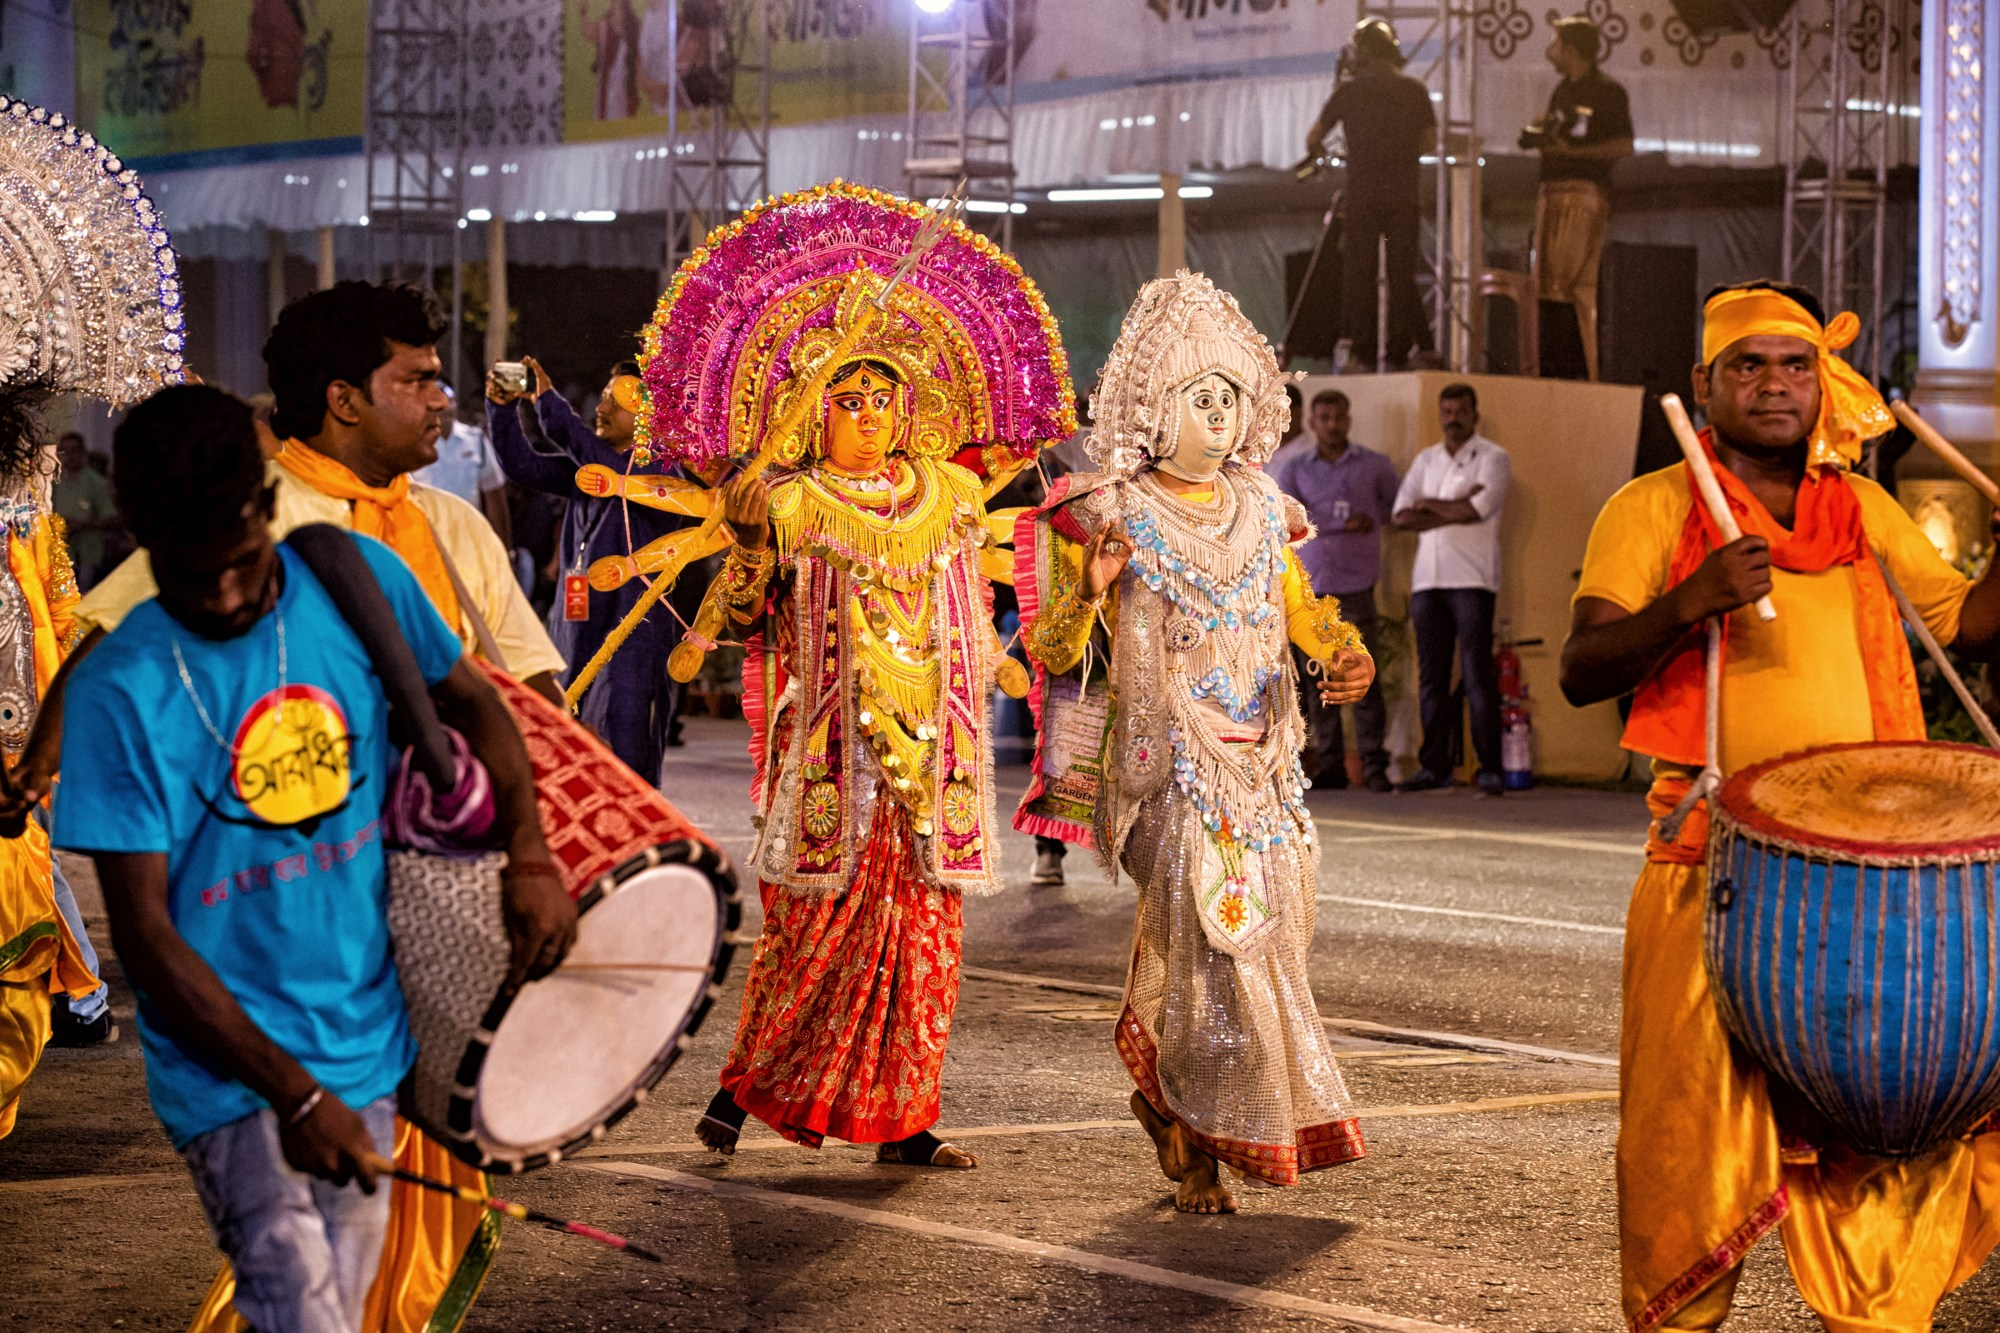 It's truly a joyous time for people to come together and celebrate during Pujo